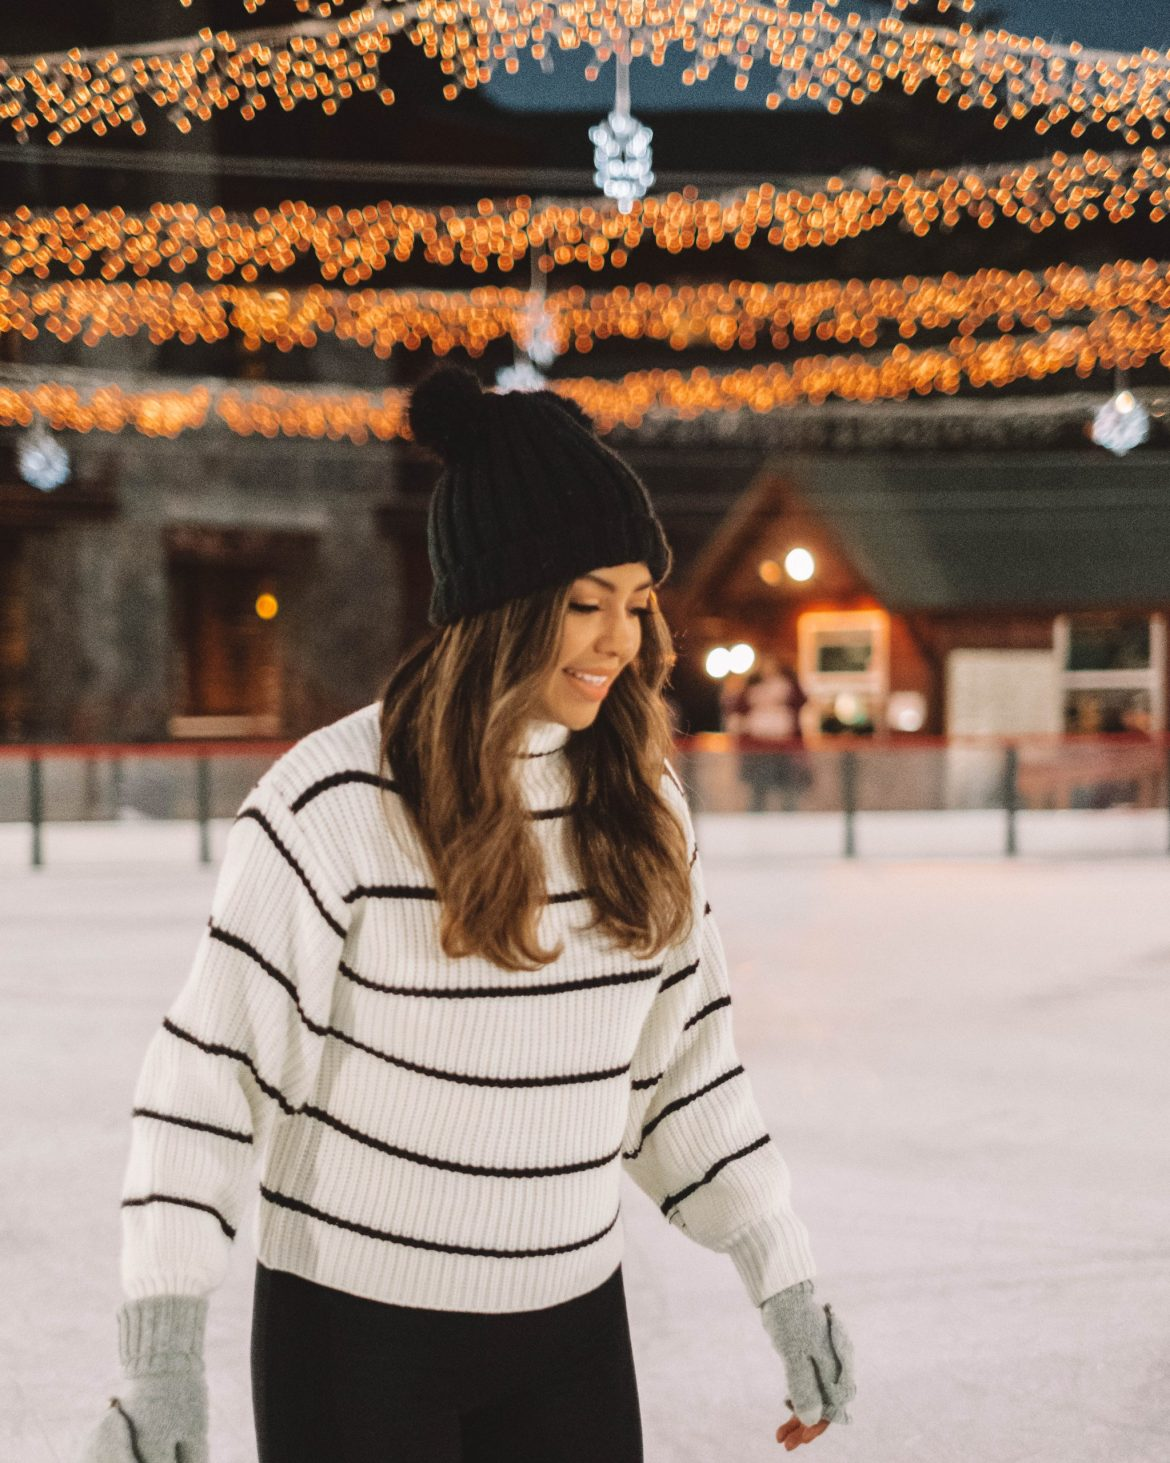 Christmas Bucket-list: 20 Fun Holiday Activities - what to do during the holidays, holiday activities, Christmas activities, and more!